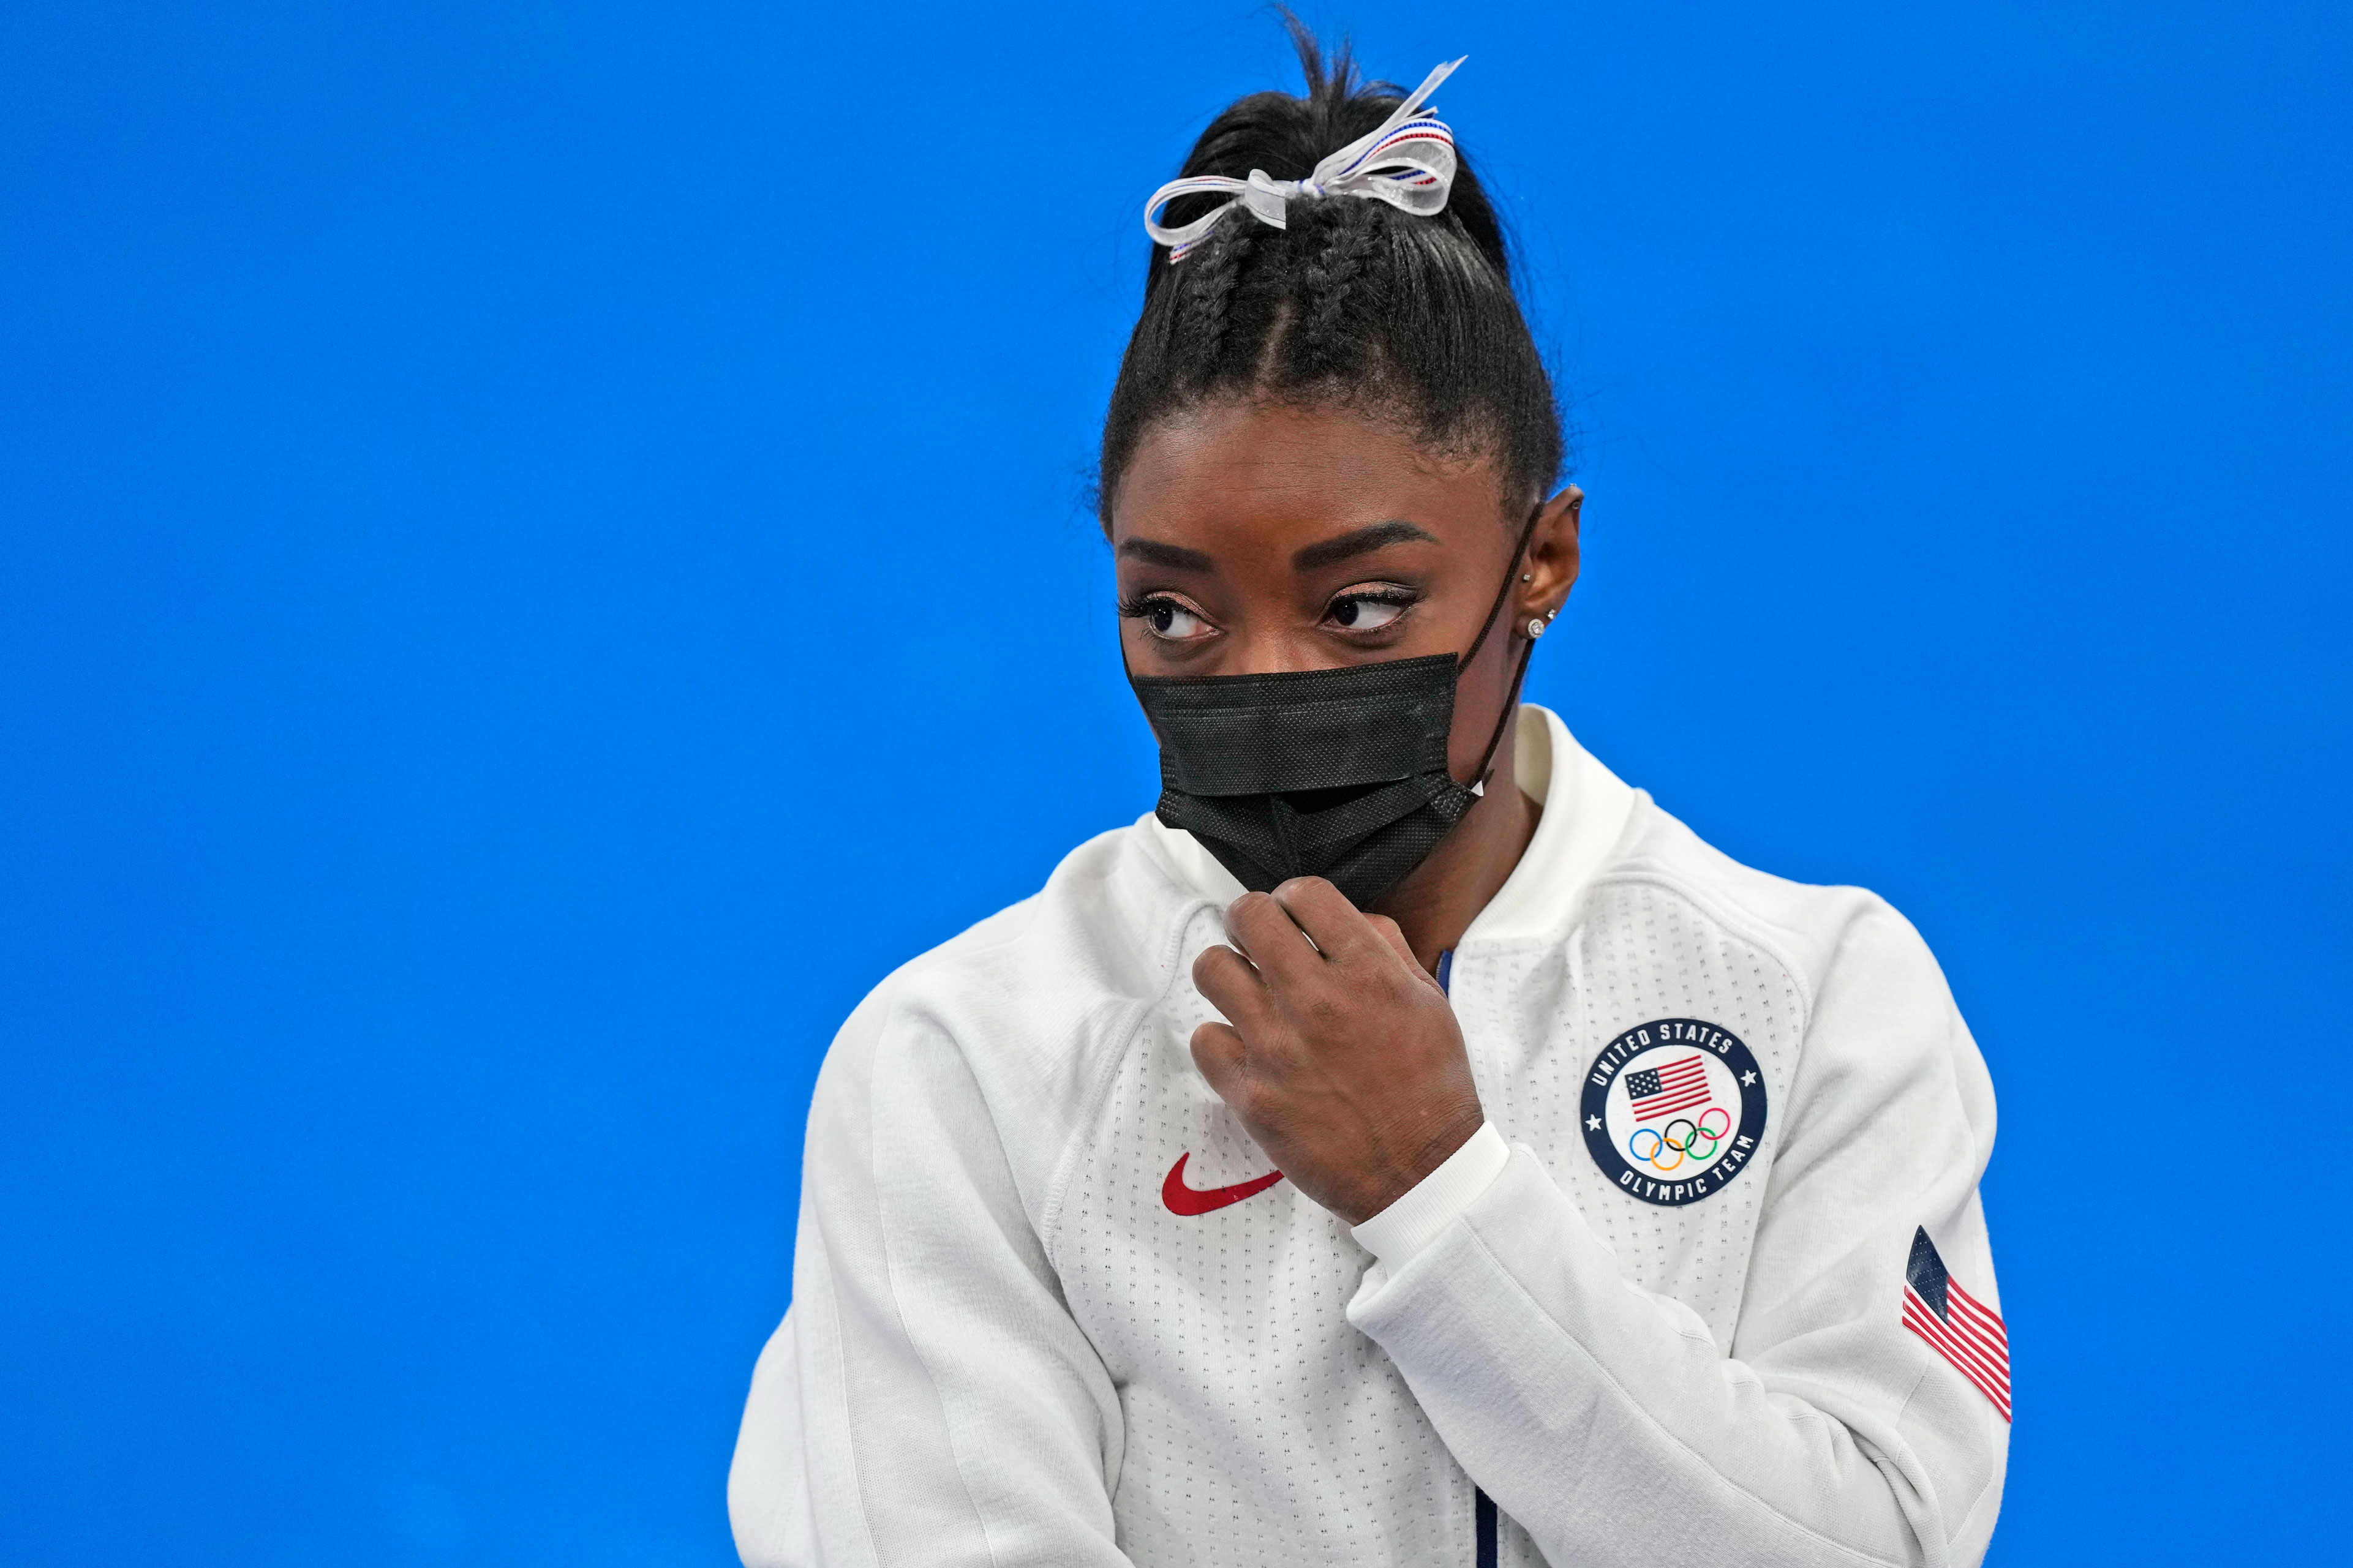 USA's Simone Biles stands wearing a mask after she exited the team final on July 27.